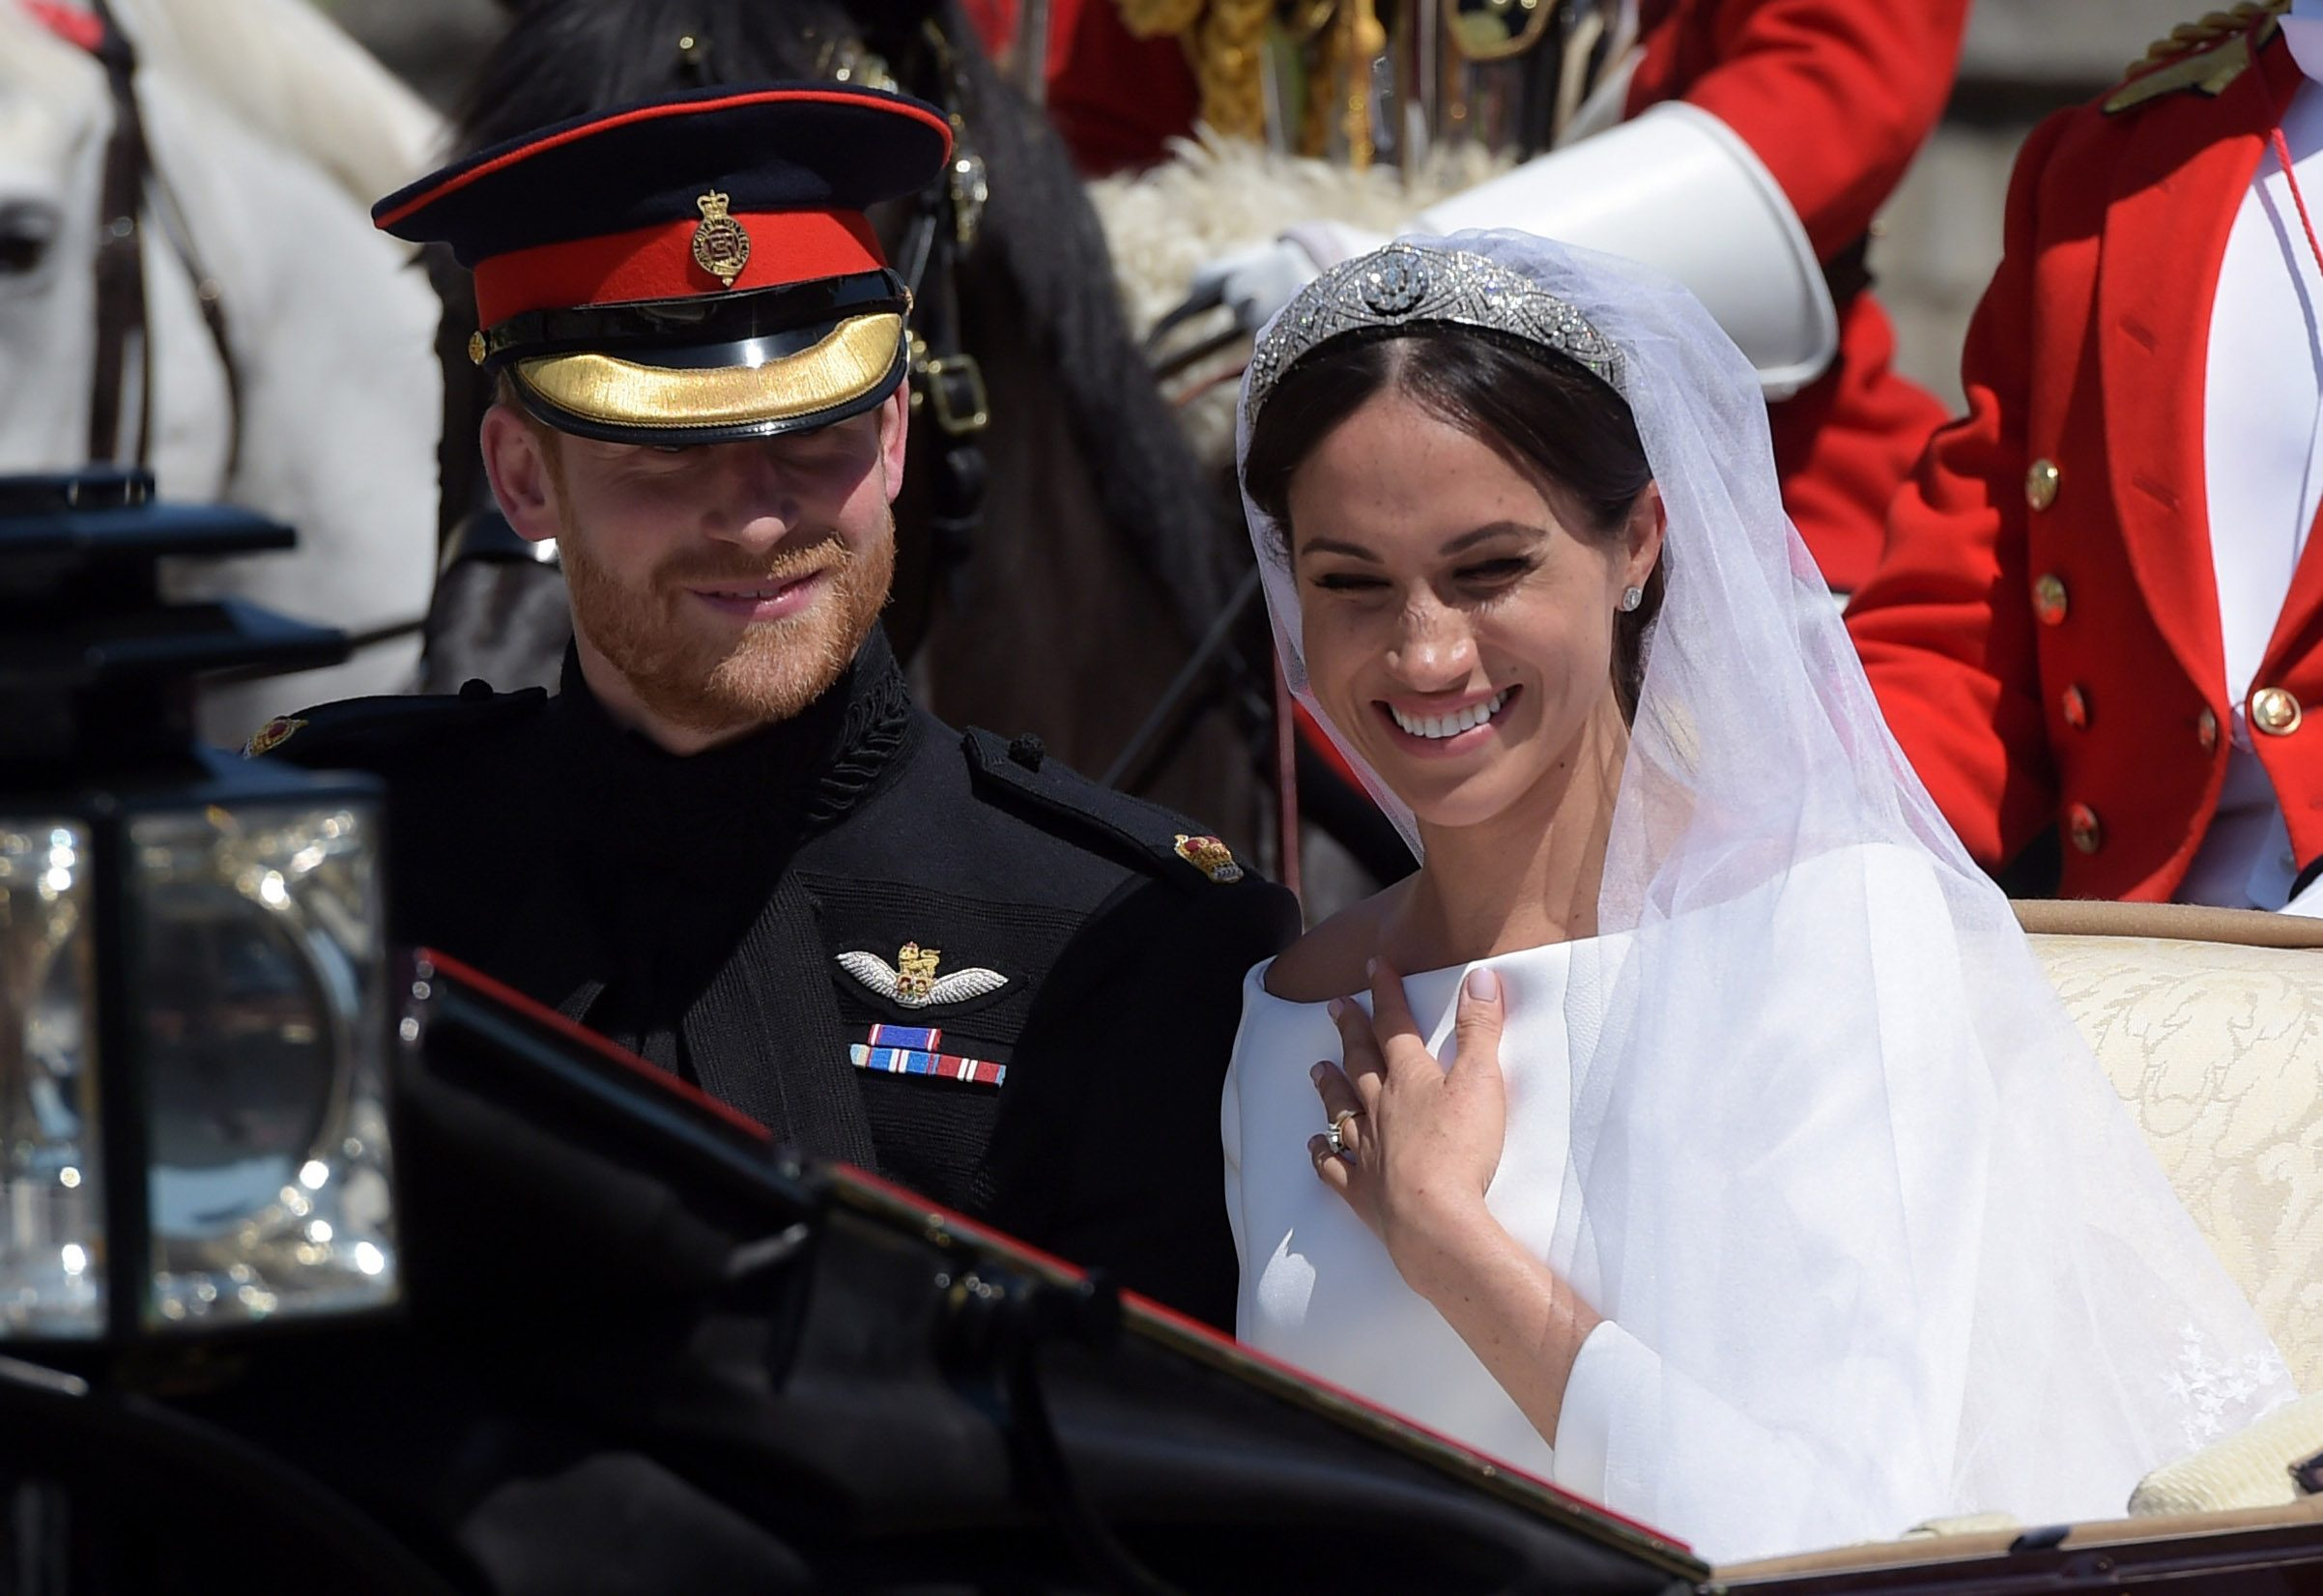 Prince Harry and Meghan Markle The wedding of Prince Harry and Meghan Markle, Carriage Procession, Windsor, Berkshire, UK - 19 May 2018